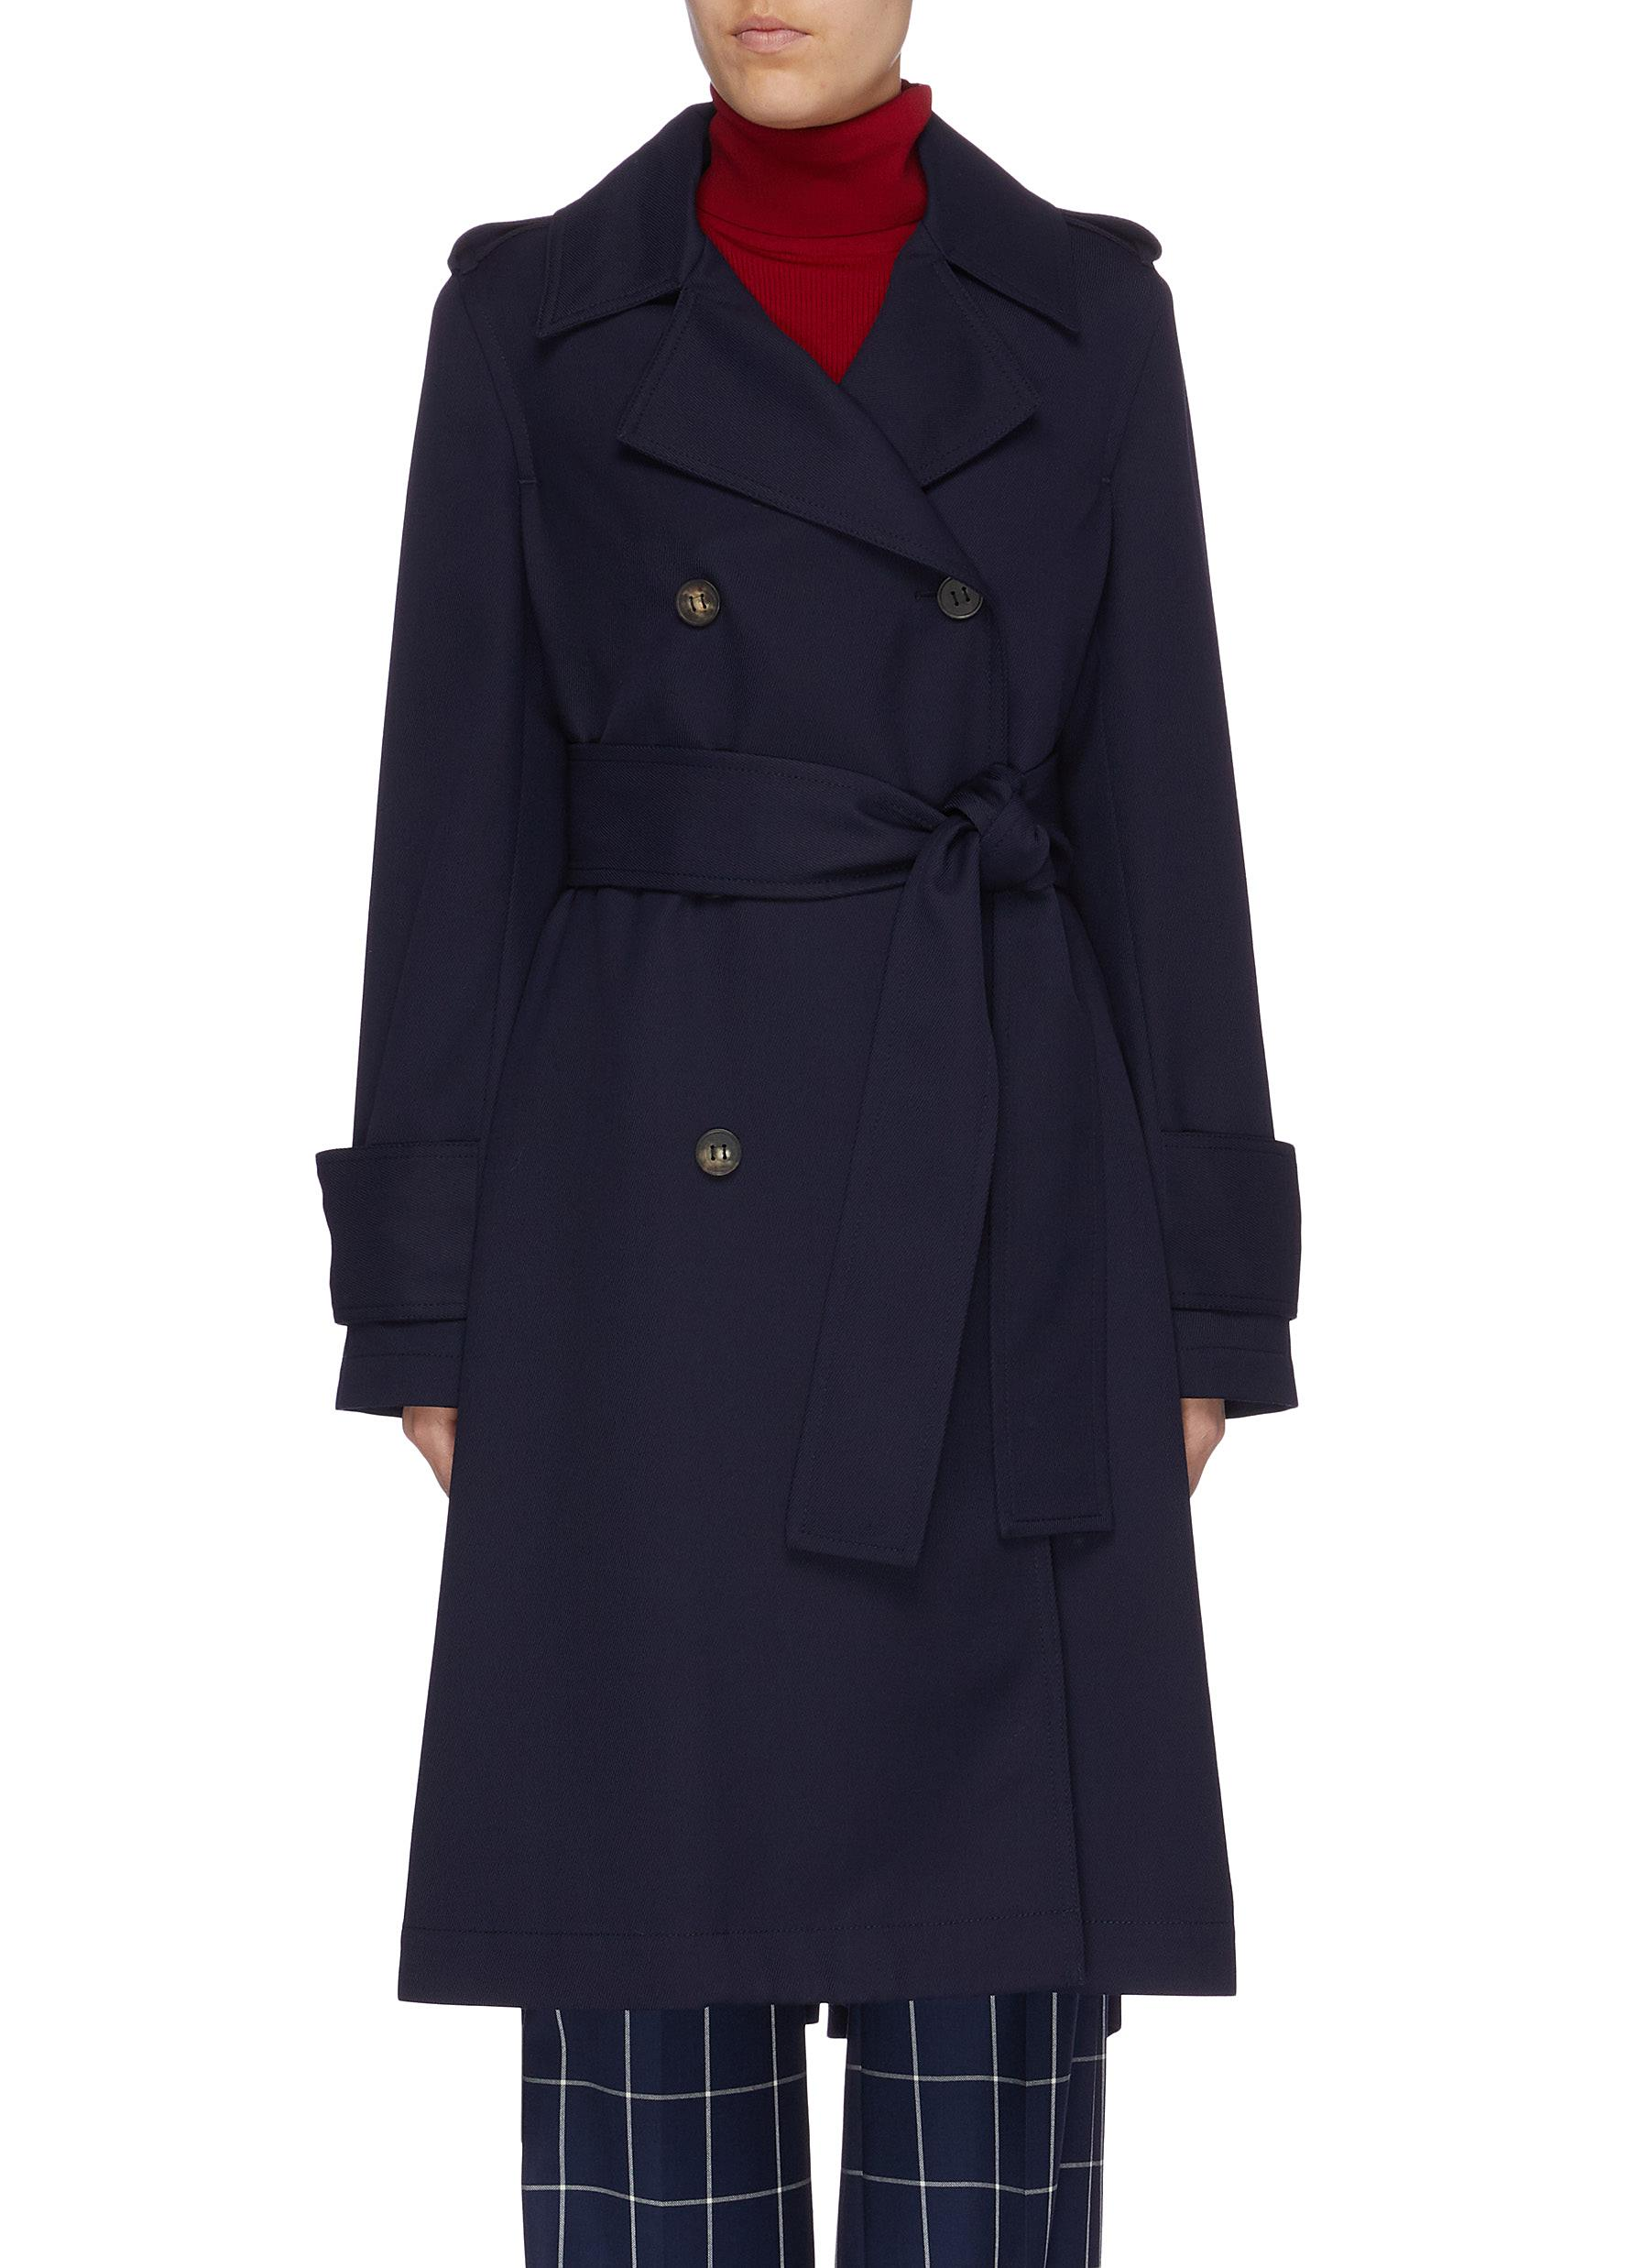 Belted double-breasted twill trench coat by Acne Studios